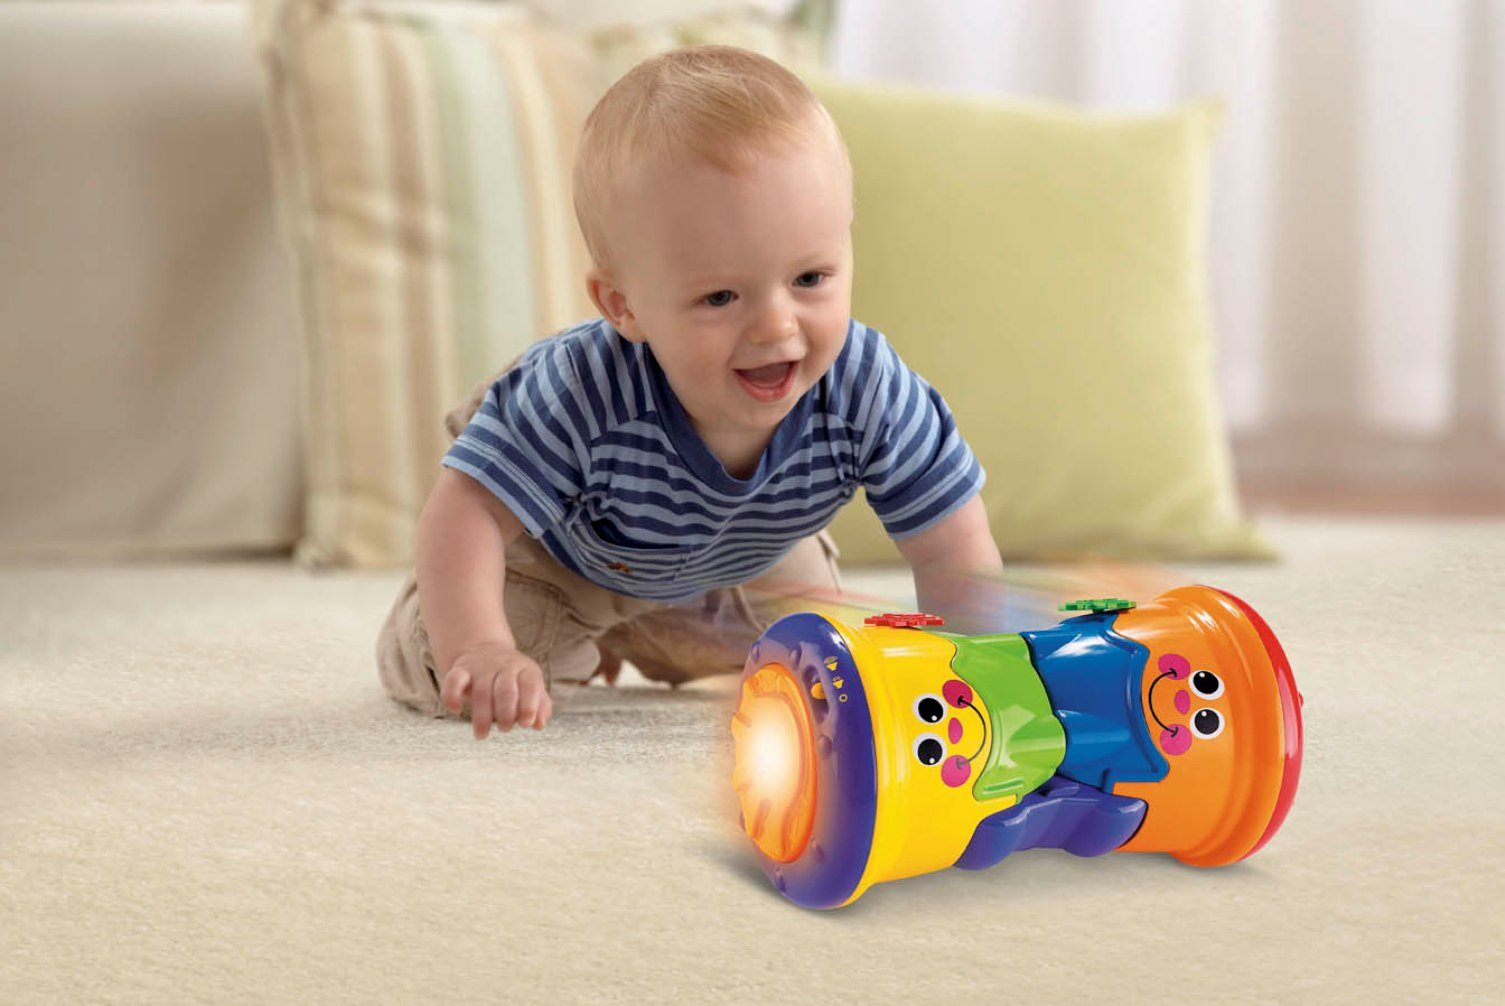 Crawling encouraging toys for babies